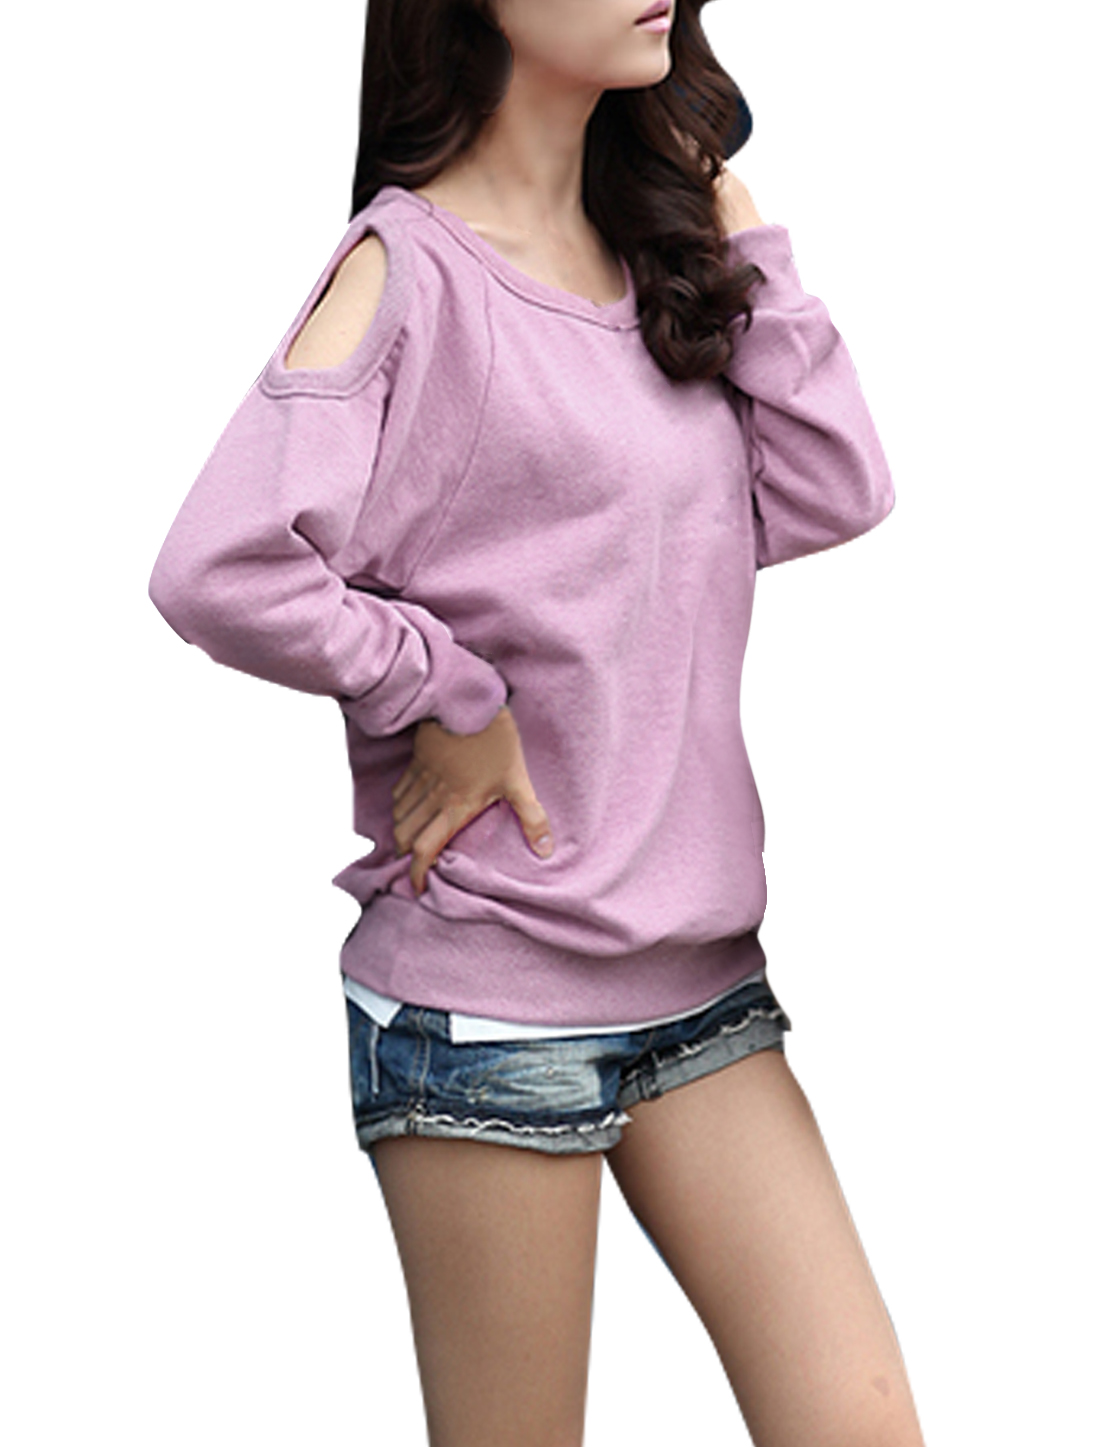 Ladies Chic Scoop Neck Cutout Shoulder Design Lilac Shirt L